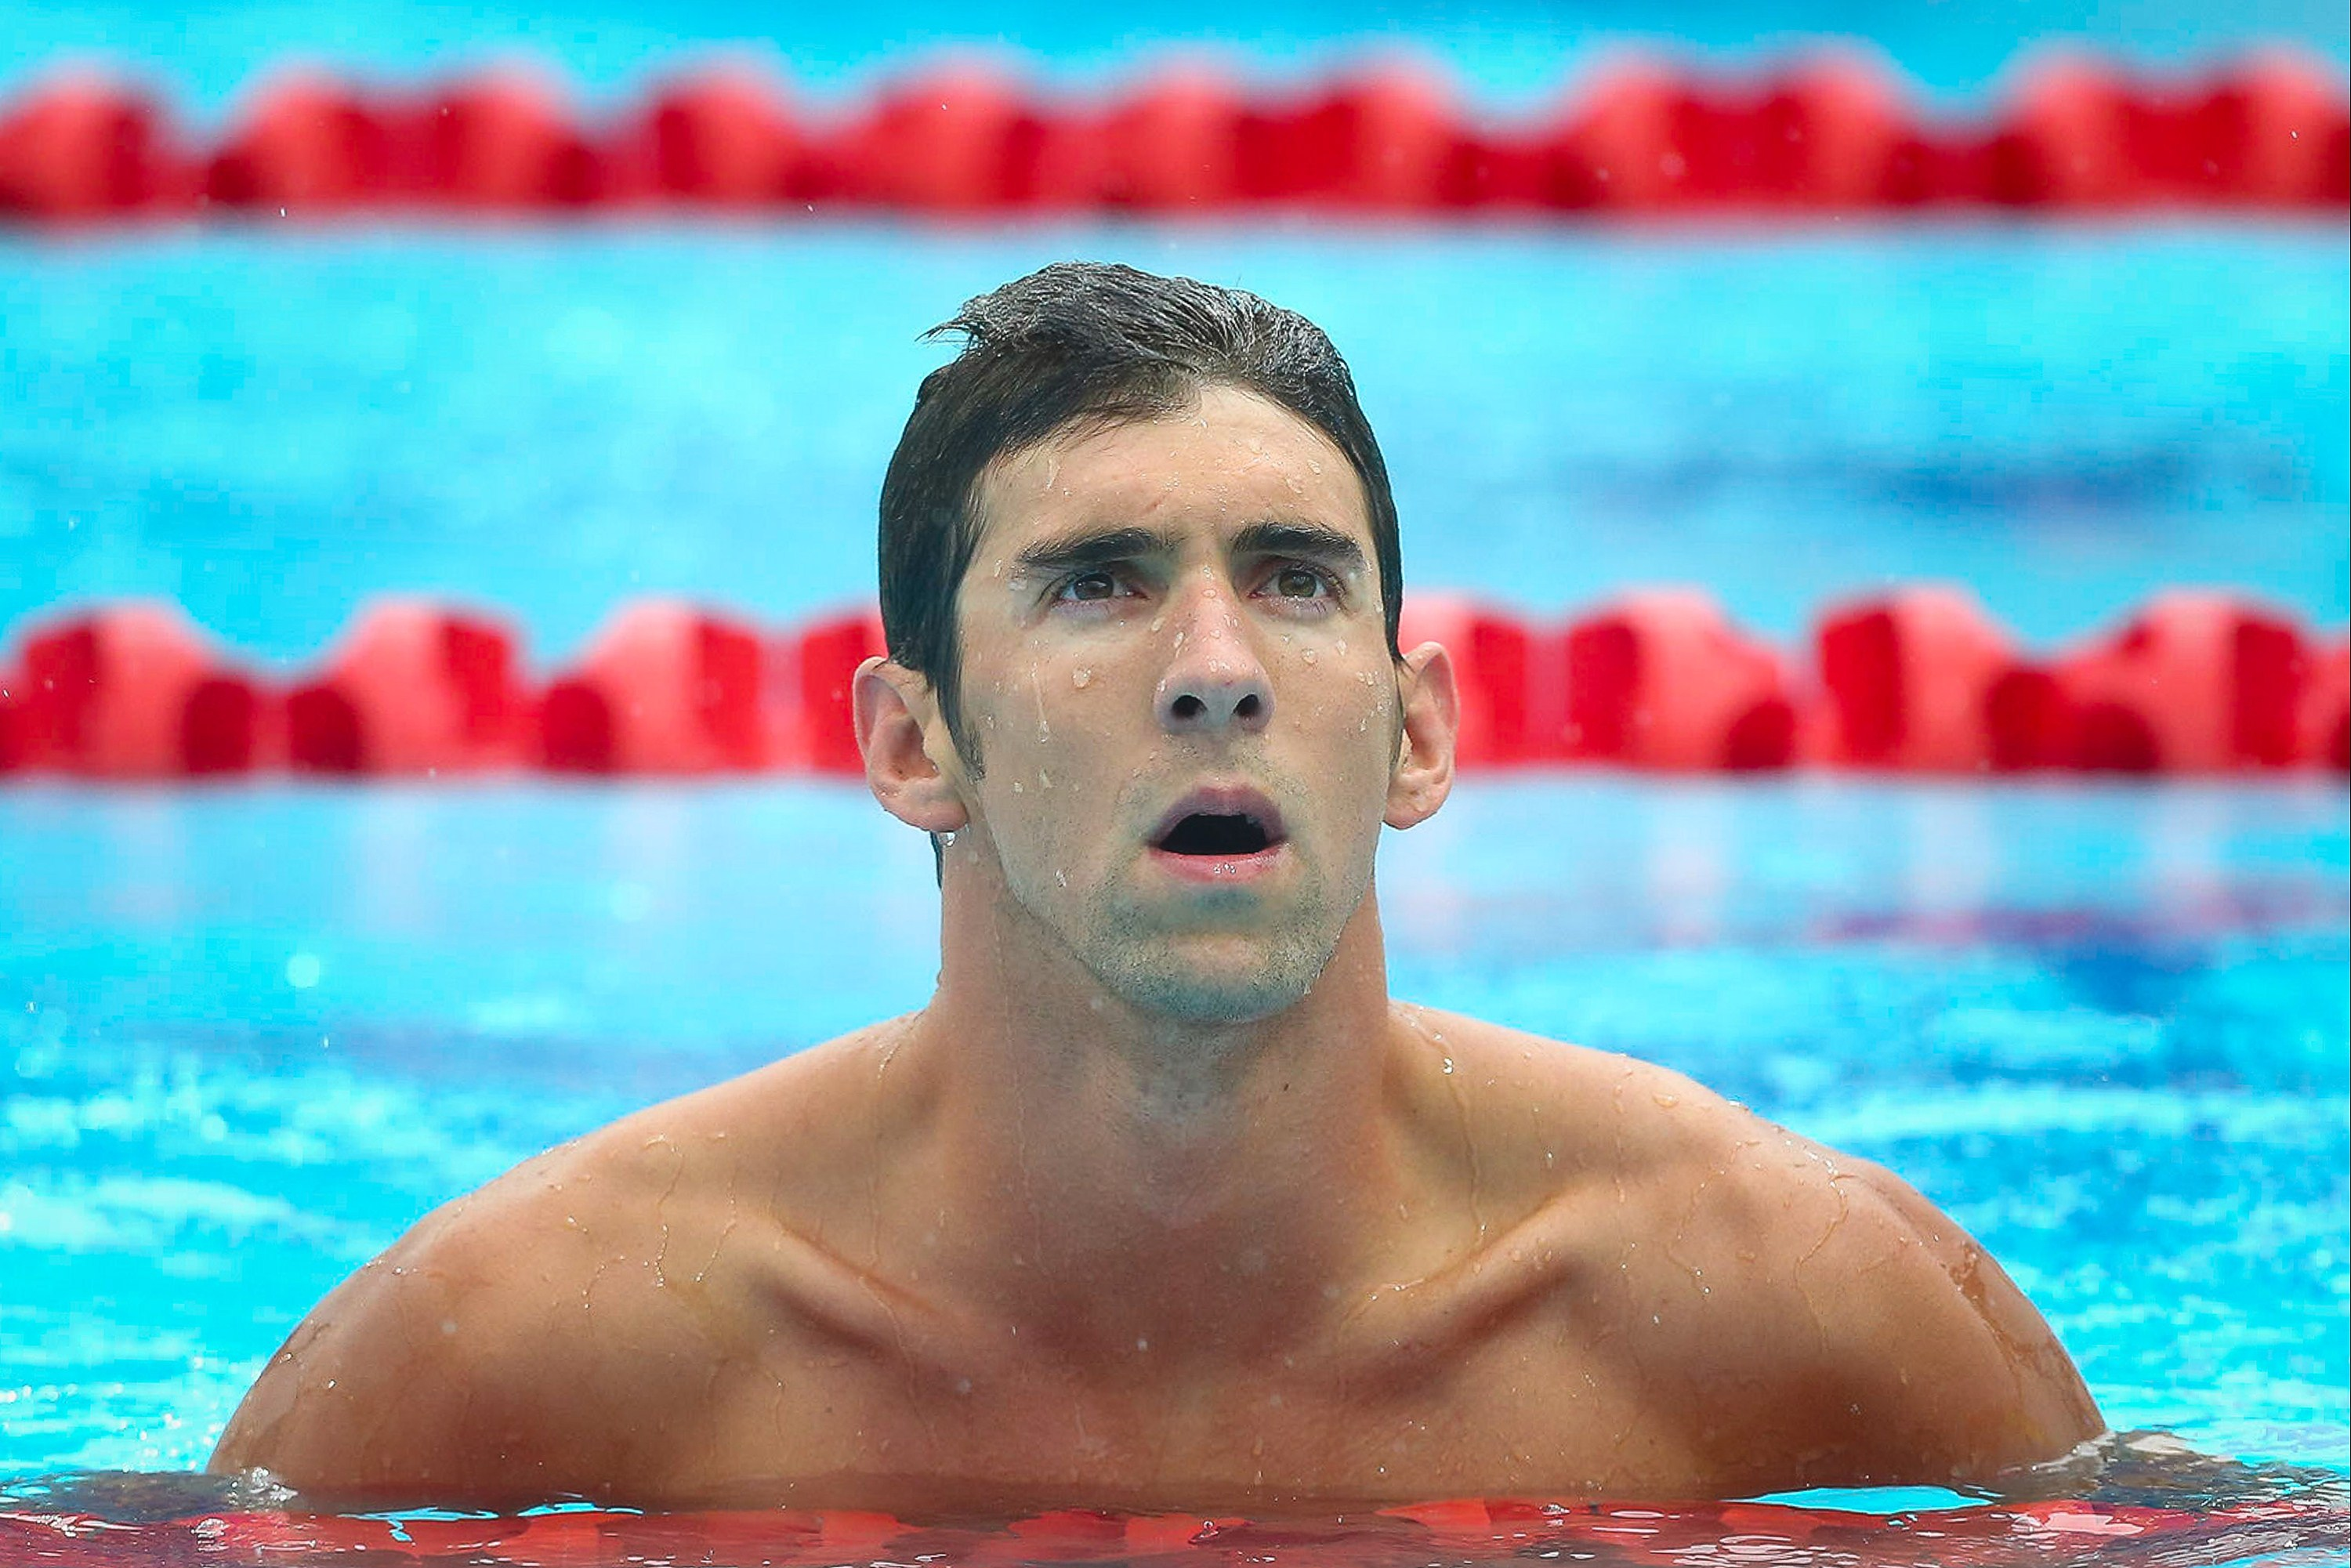 Michael Phelps of the US reacts following the men's 100 m butterfly heat at the Gold Coast Aquatic Centre on the Gold Coast in Australia on Aug. 23, 2014.